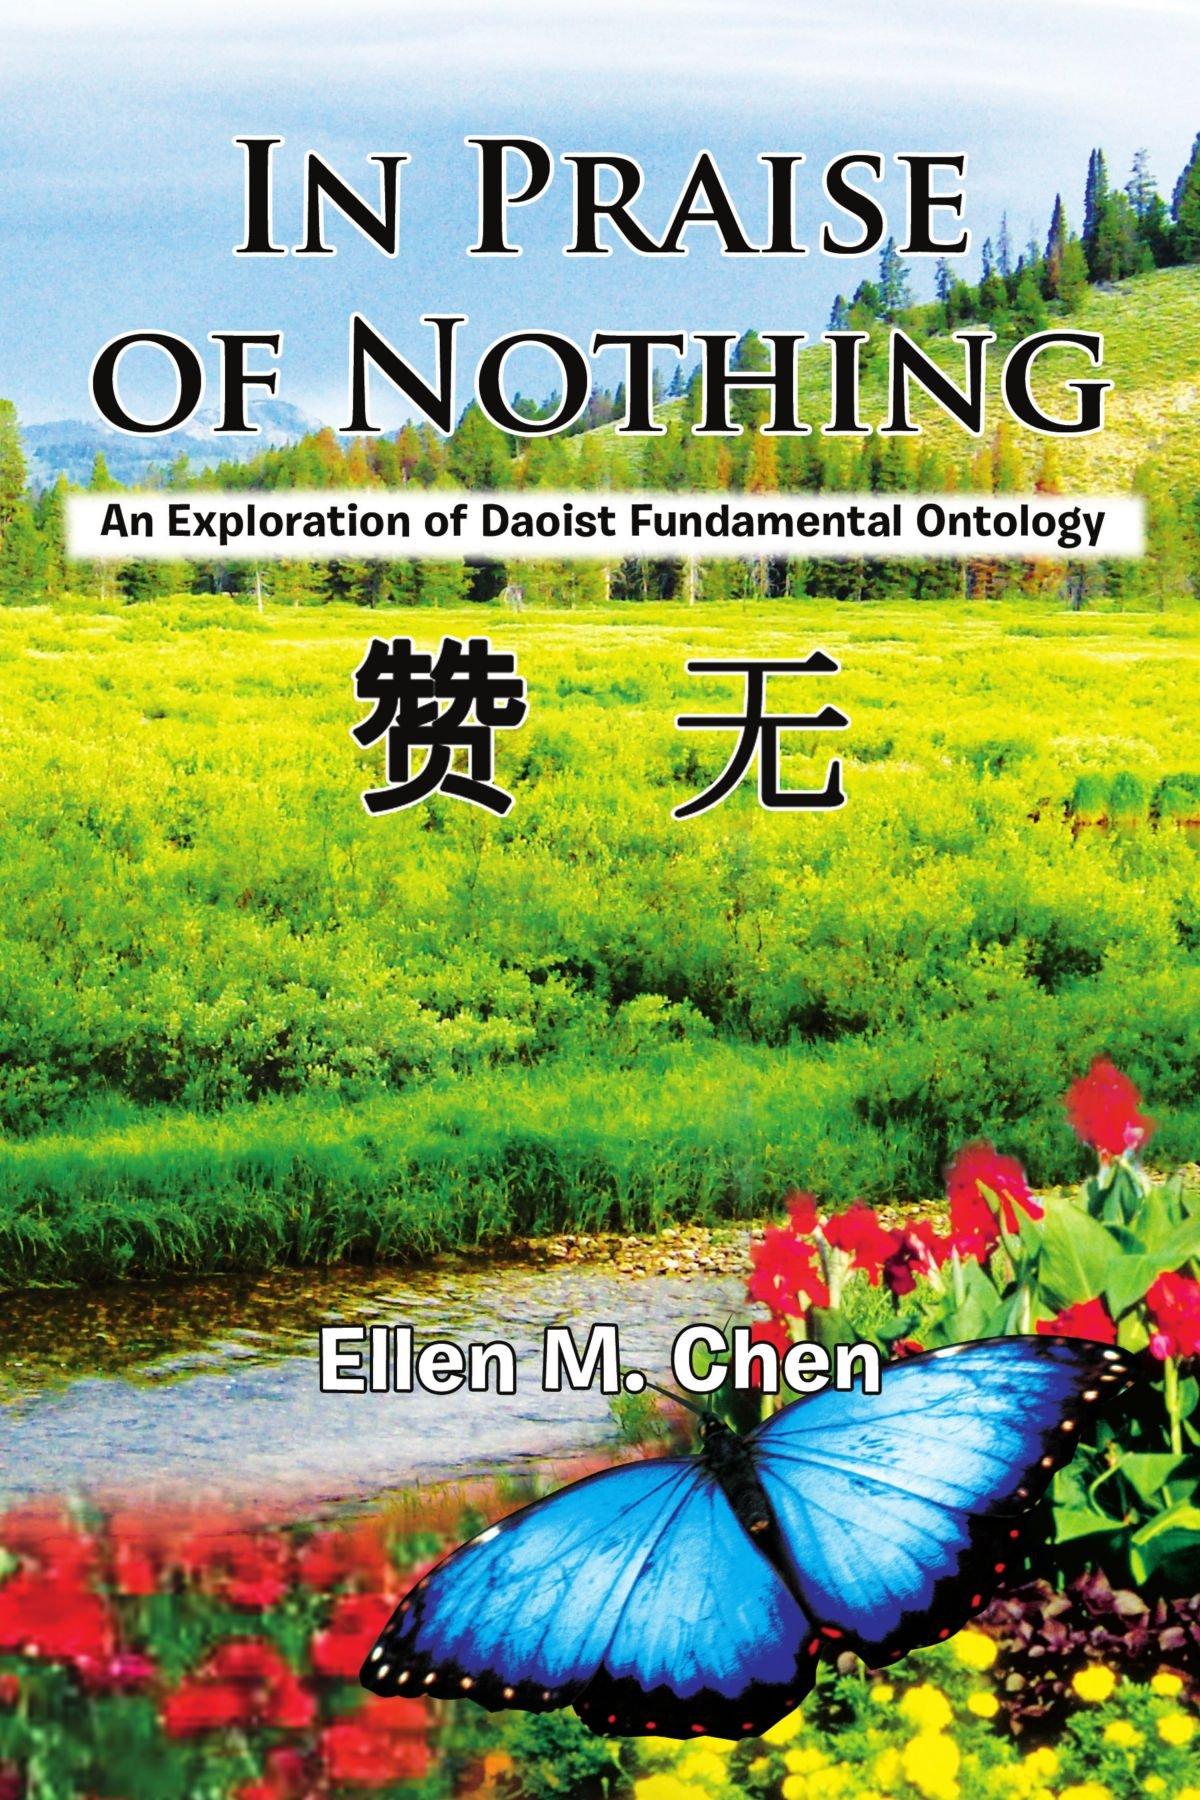 In Praise of Nothing: An Exploration of Daoist Fundamental Ontology